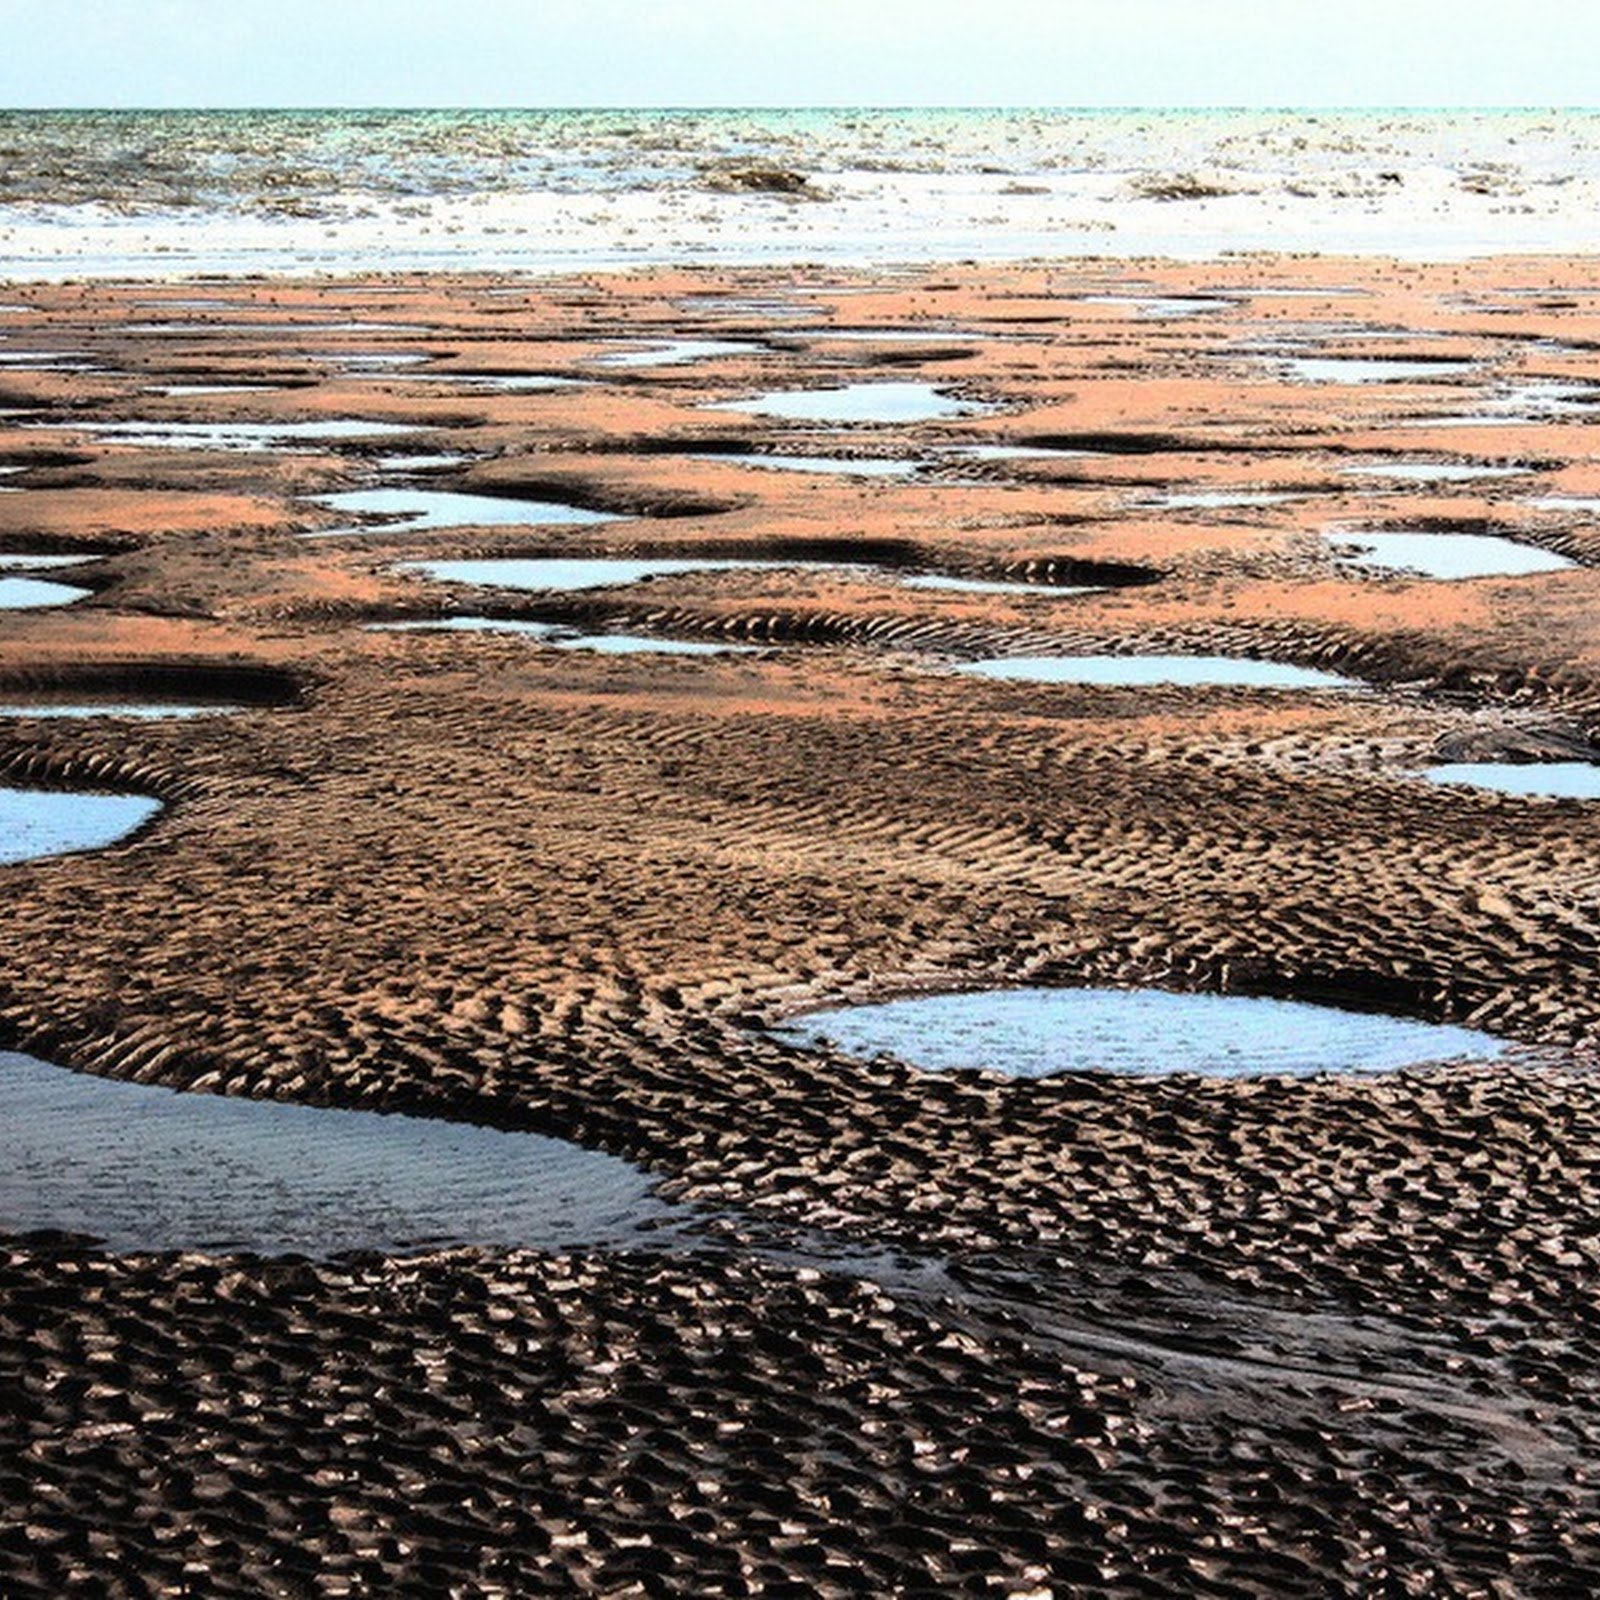 Goodwin Sands And Its Shipwrecks